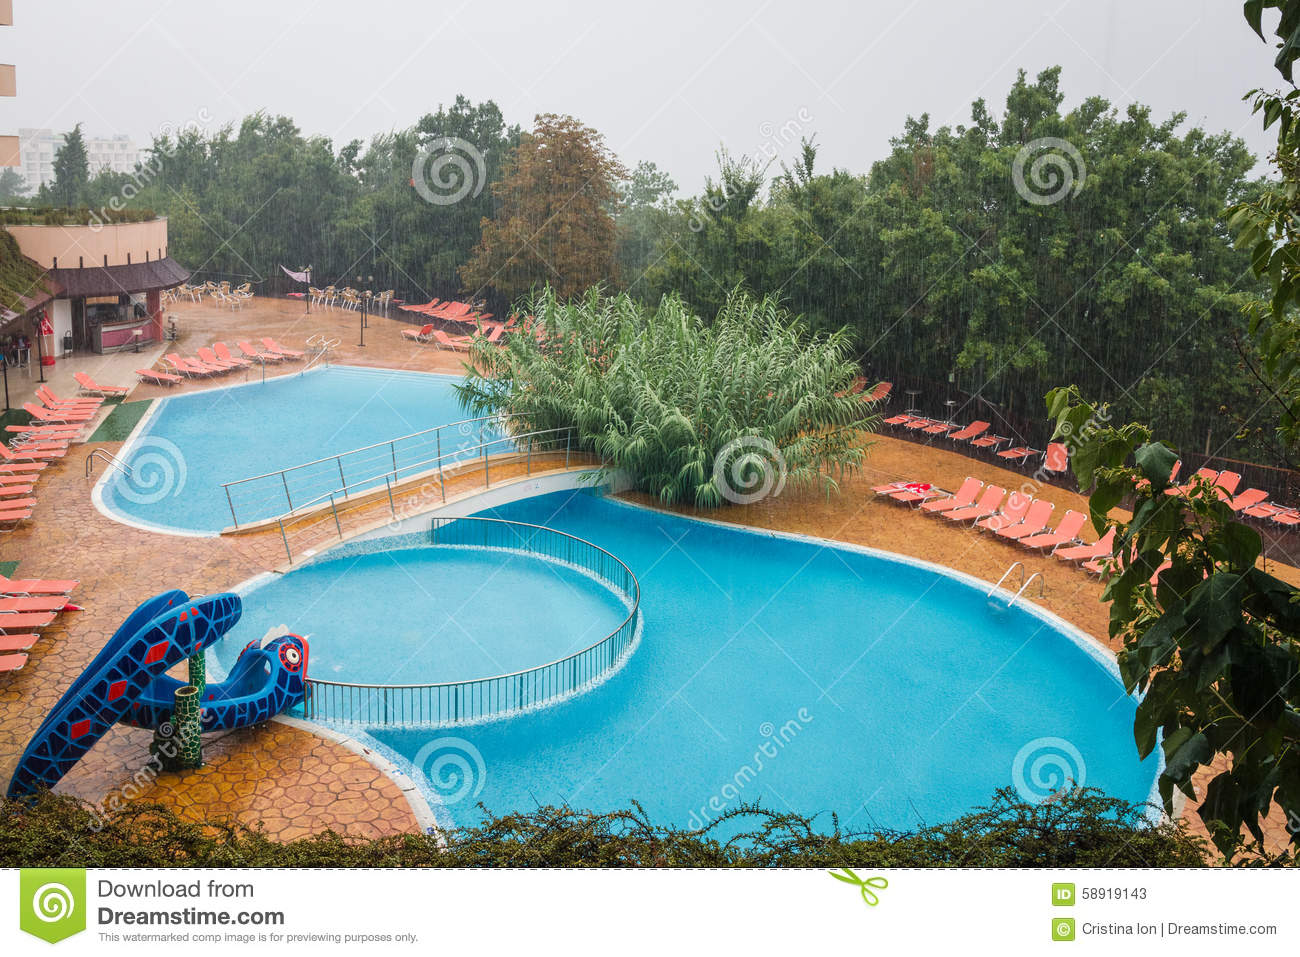 Swimmingpool Berlin Lti Berlin Green Park Swimmingpool Golden Sands Bulgaria Stock